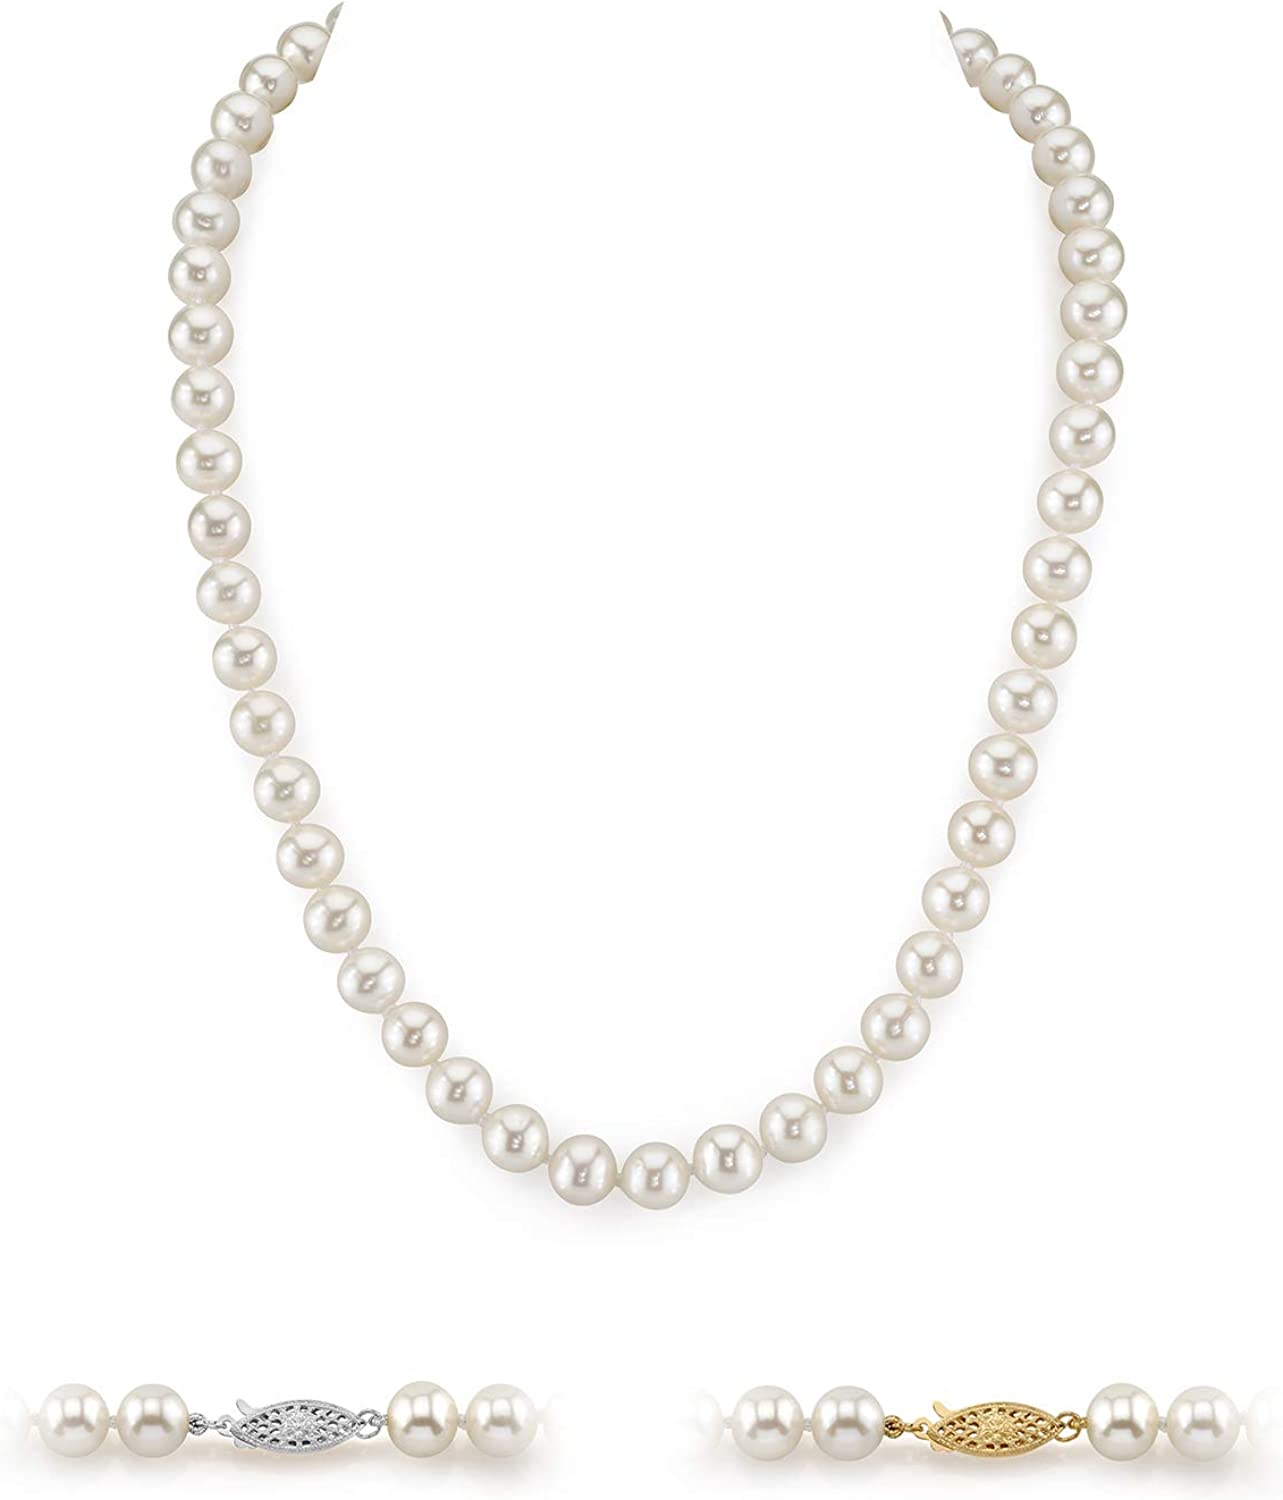 White Freshwater Cultured Pearl Max 52% OFF Necklace for Le Inch Max 86% OFF in 20 Women